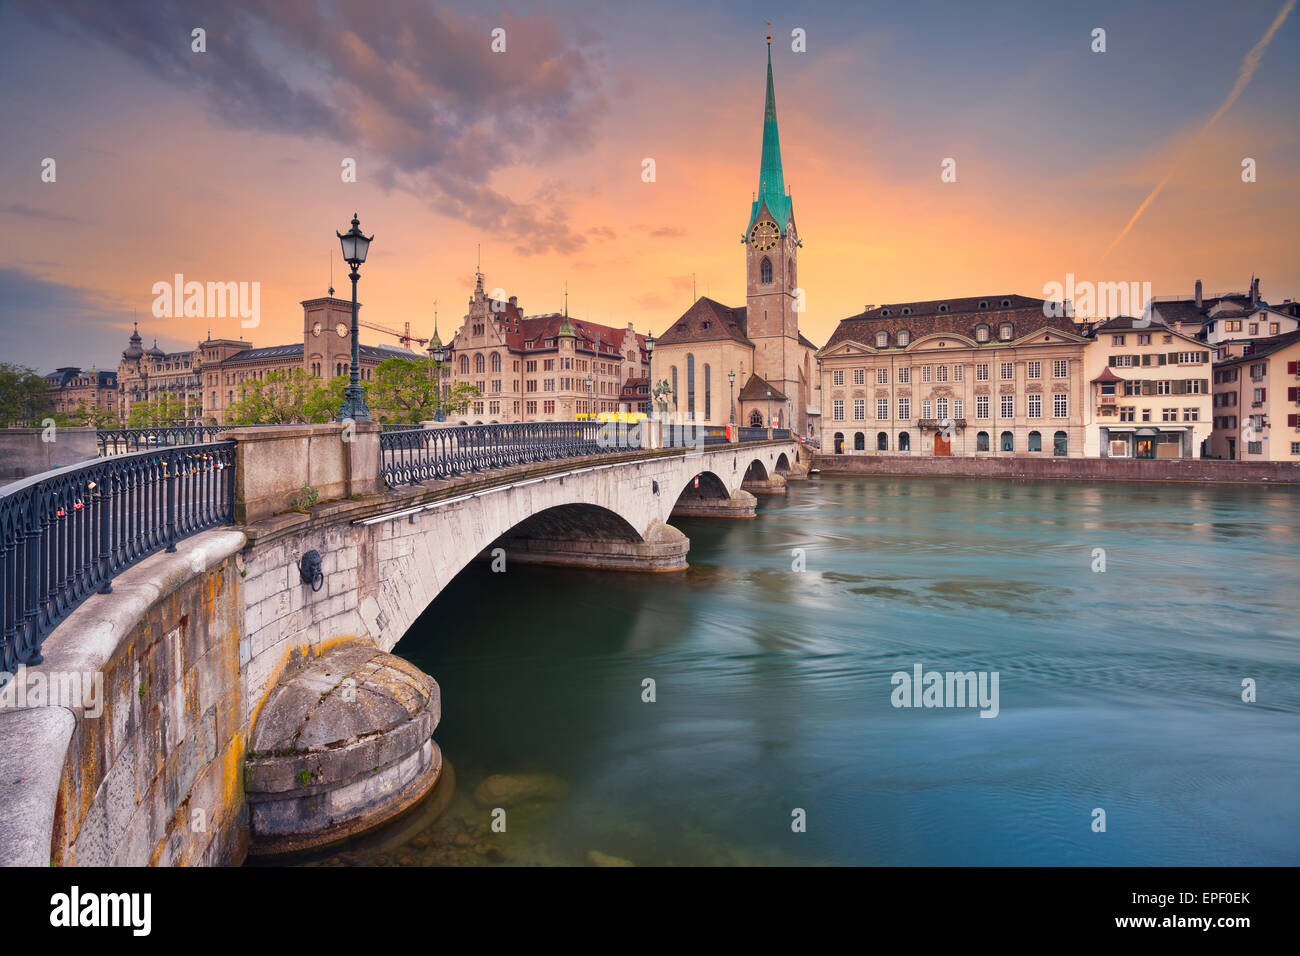 Zurich. Image of Zurich during dramatic sunrise. Stock Photo